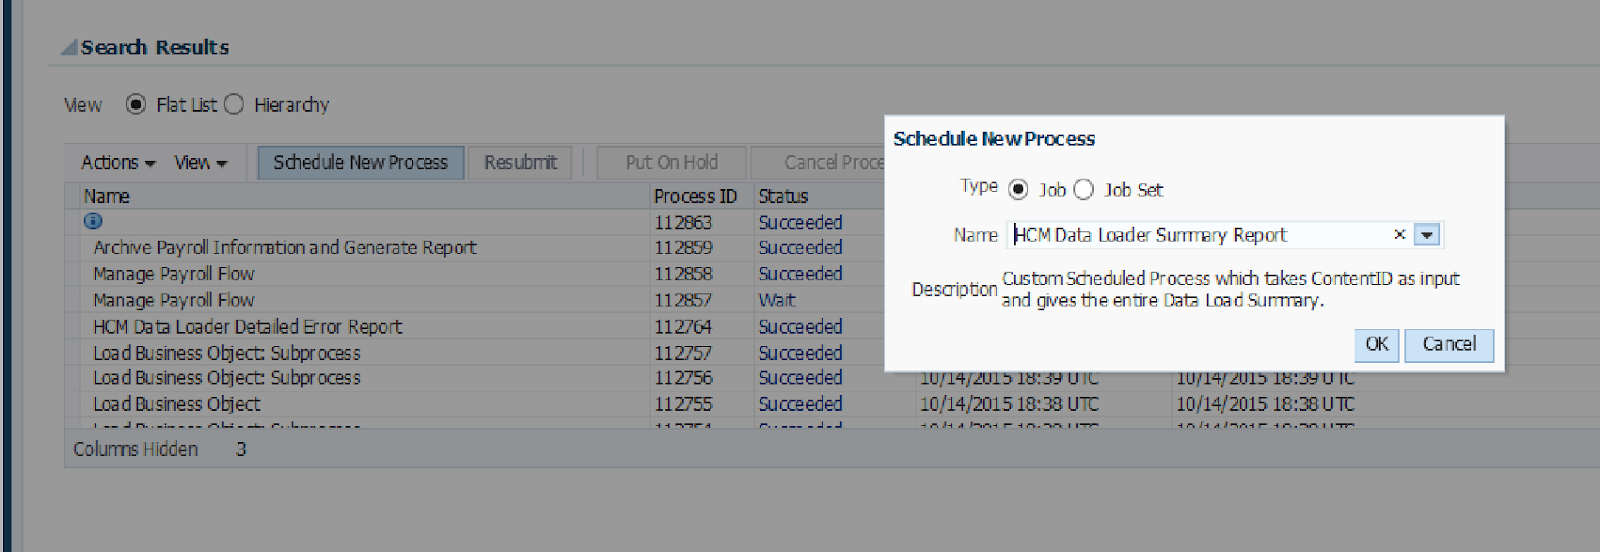 How to Create a Custom ESS Job in Fusion Applications